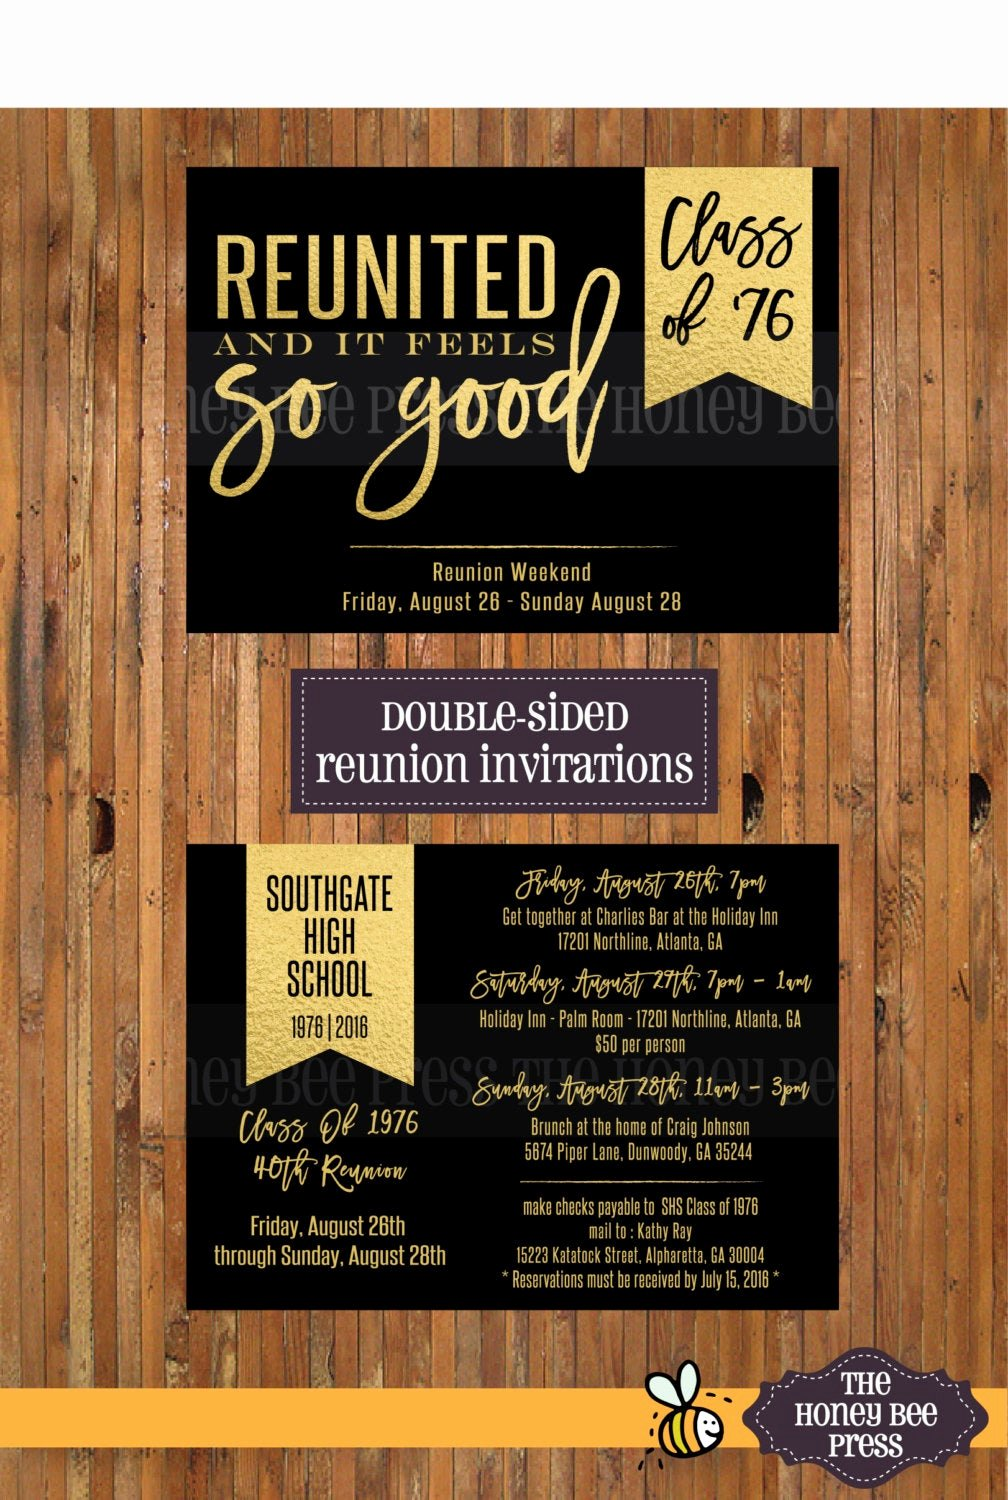 Class Reunion Invitation Template Inspirational Reunited and It Feels so Good High School Reunion Invitations